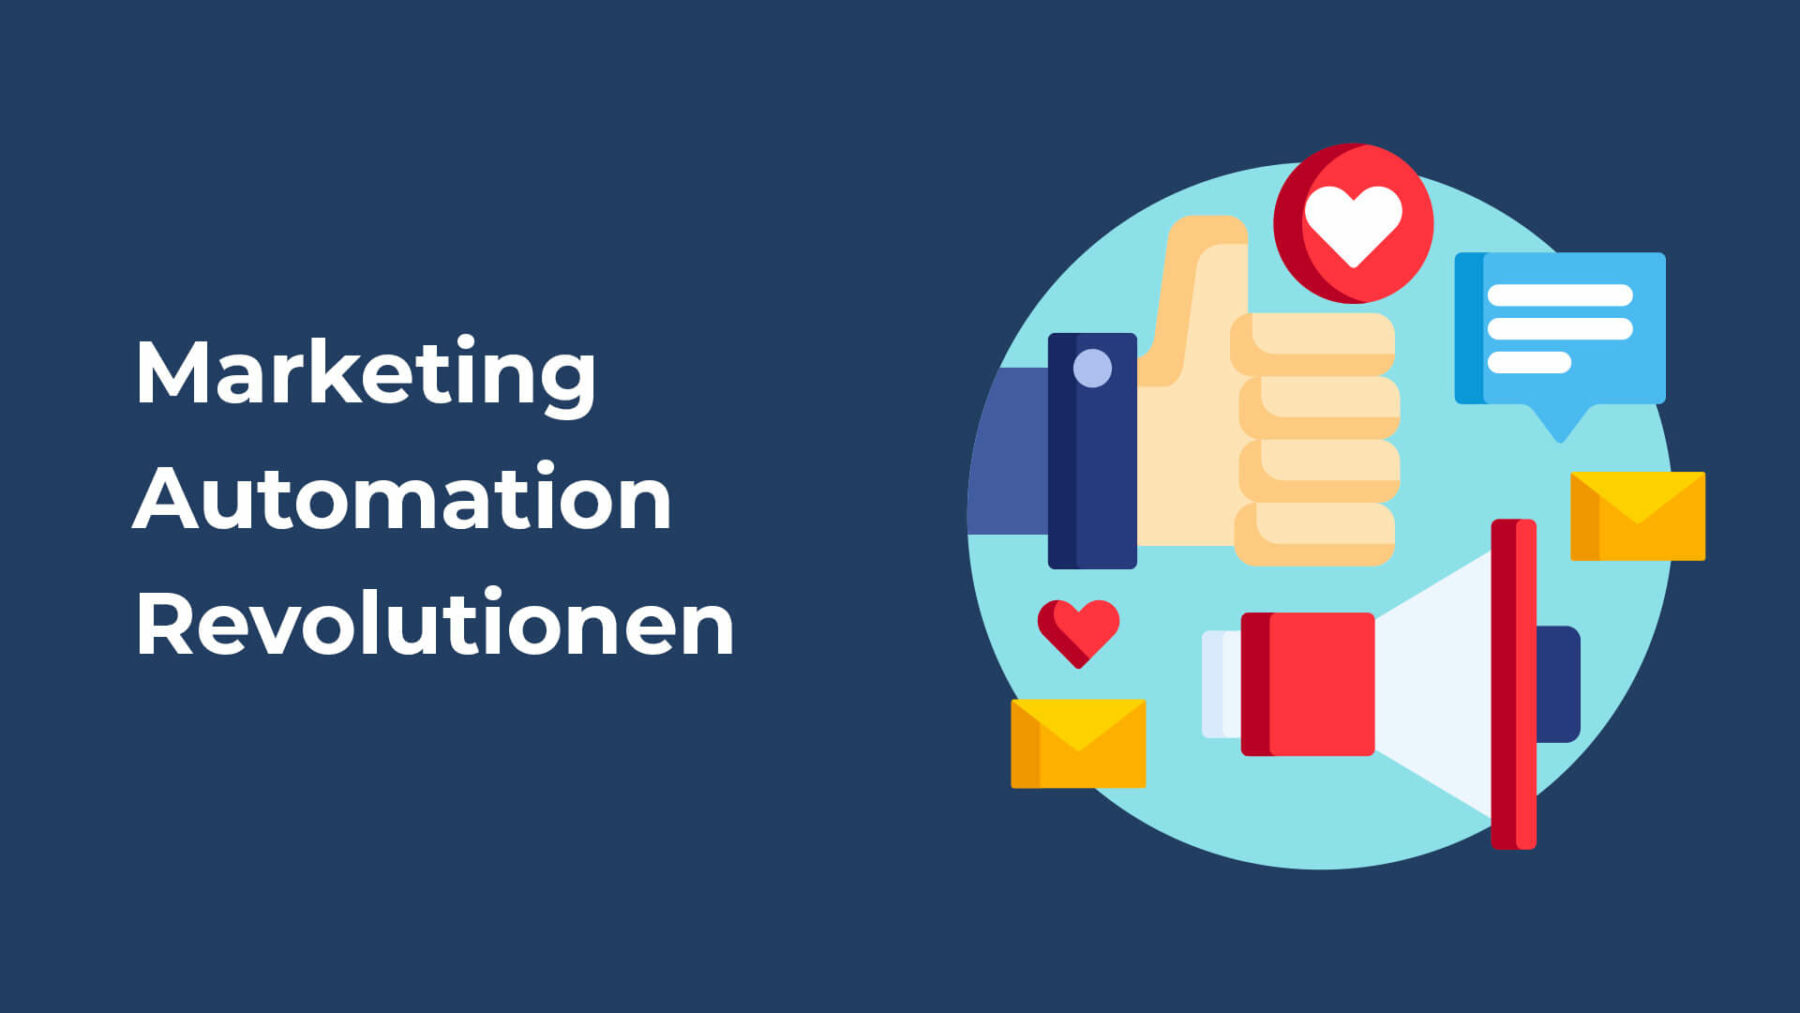 Marketing automation revolutionen header